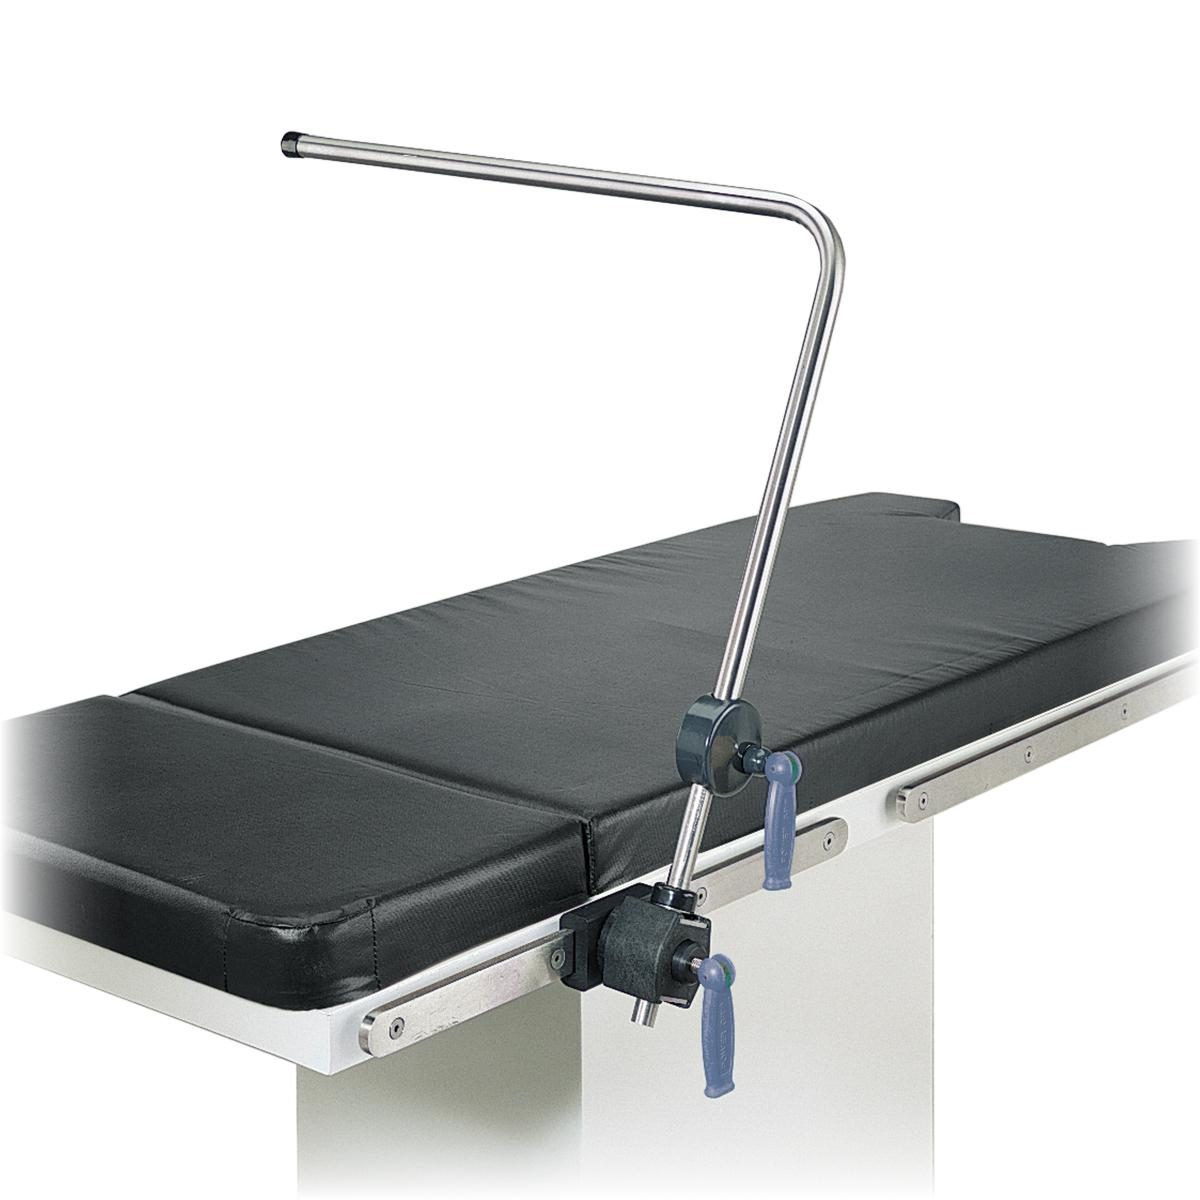 Anesthesia Screen - Without Wings diagonal view on OR table